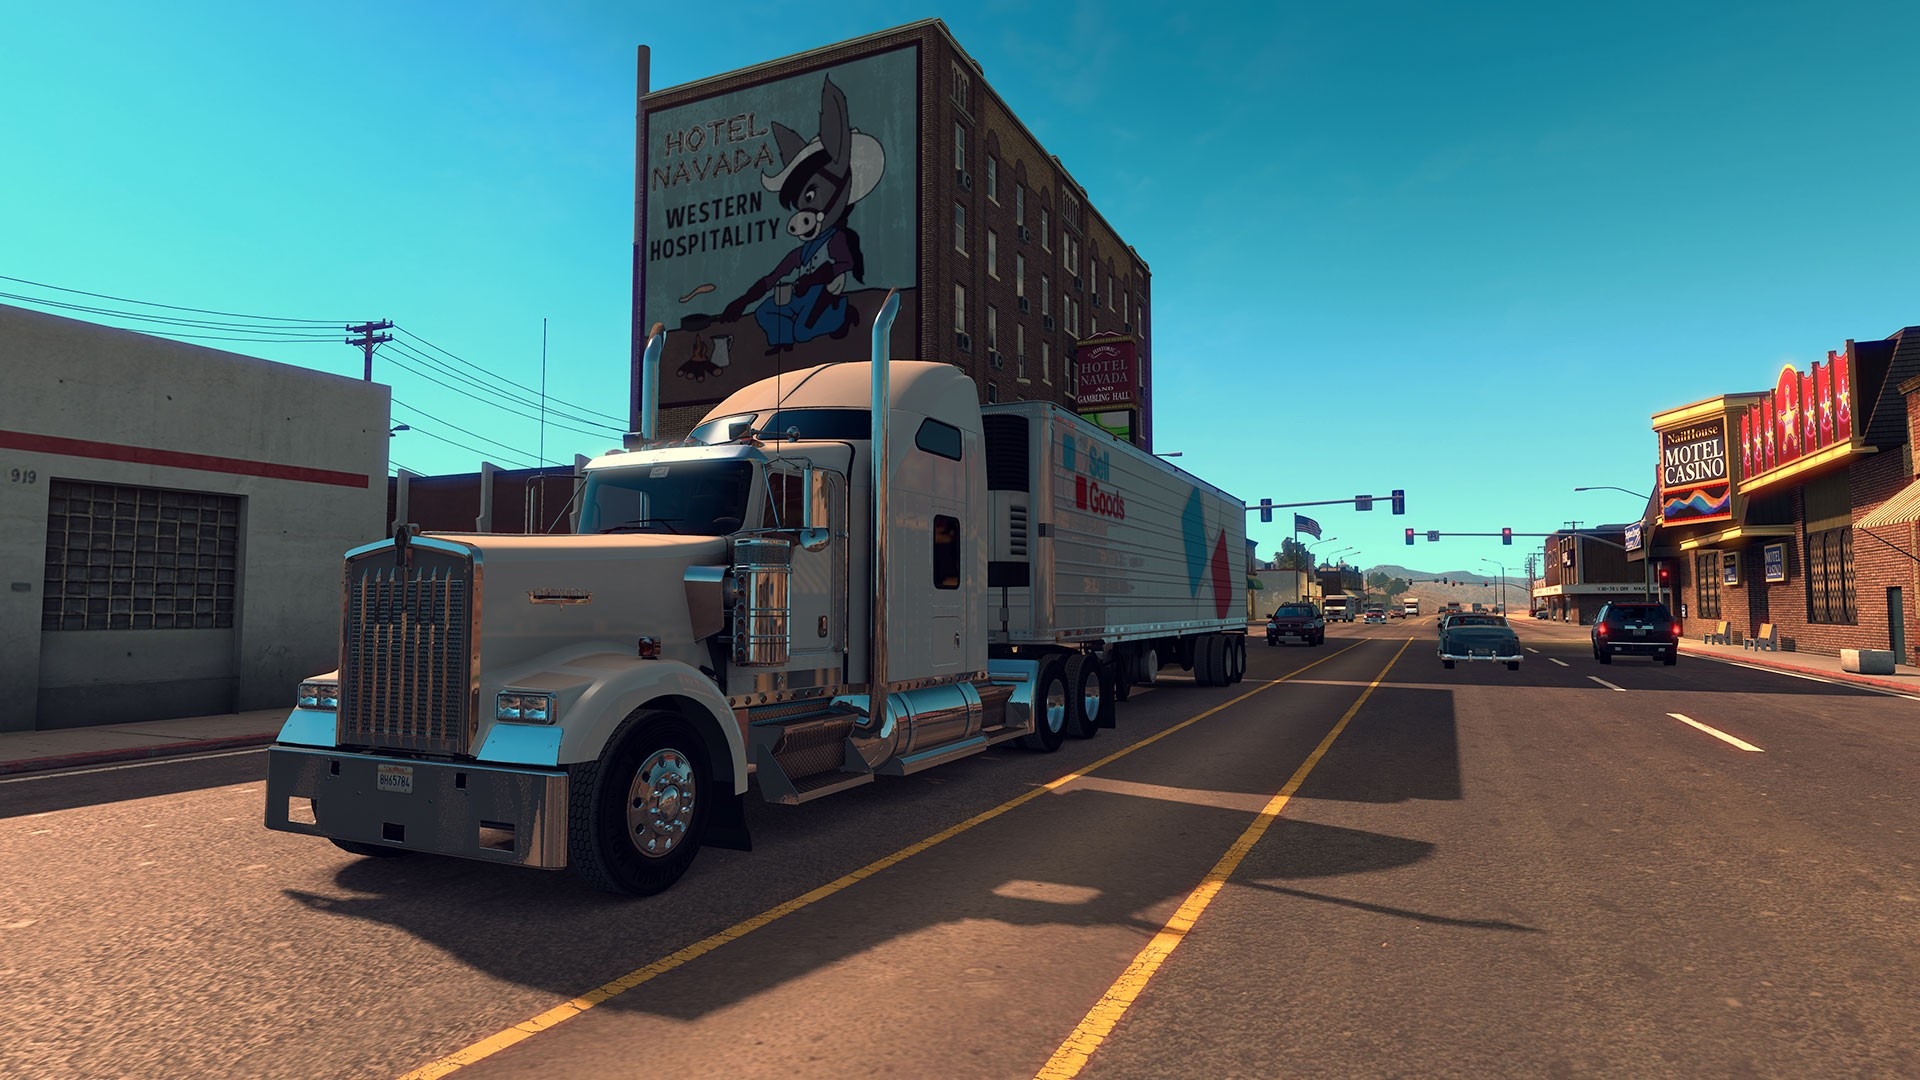 The euro truck simulator 2 money cheats will let you get and add unlimited money amount into your game for buying more and more premium stuff without spending the real world money. Shoot criminals and make war against the evils while creating more thrills in the game with Sniper 3D Hack Tool .